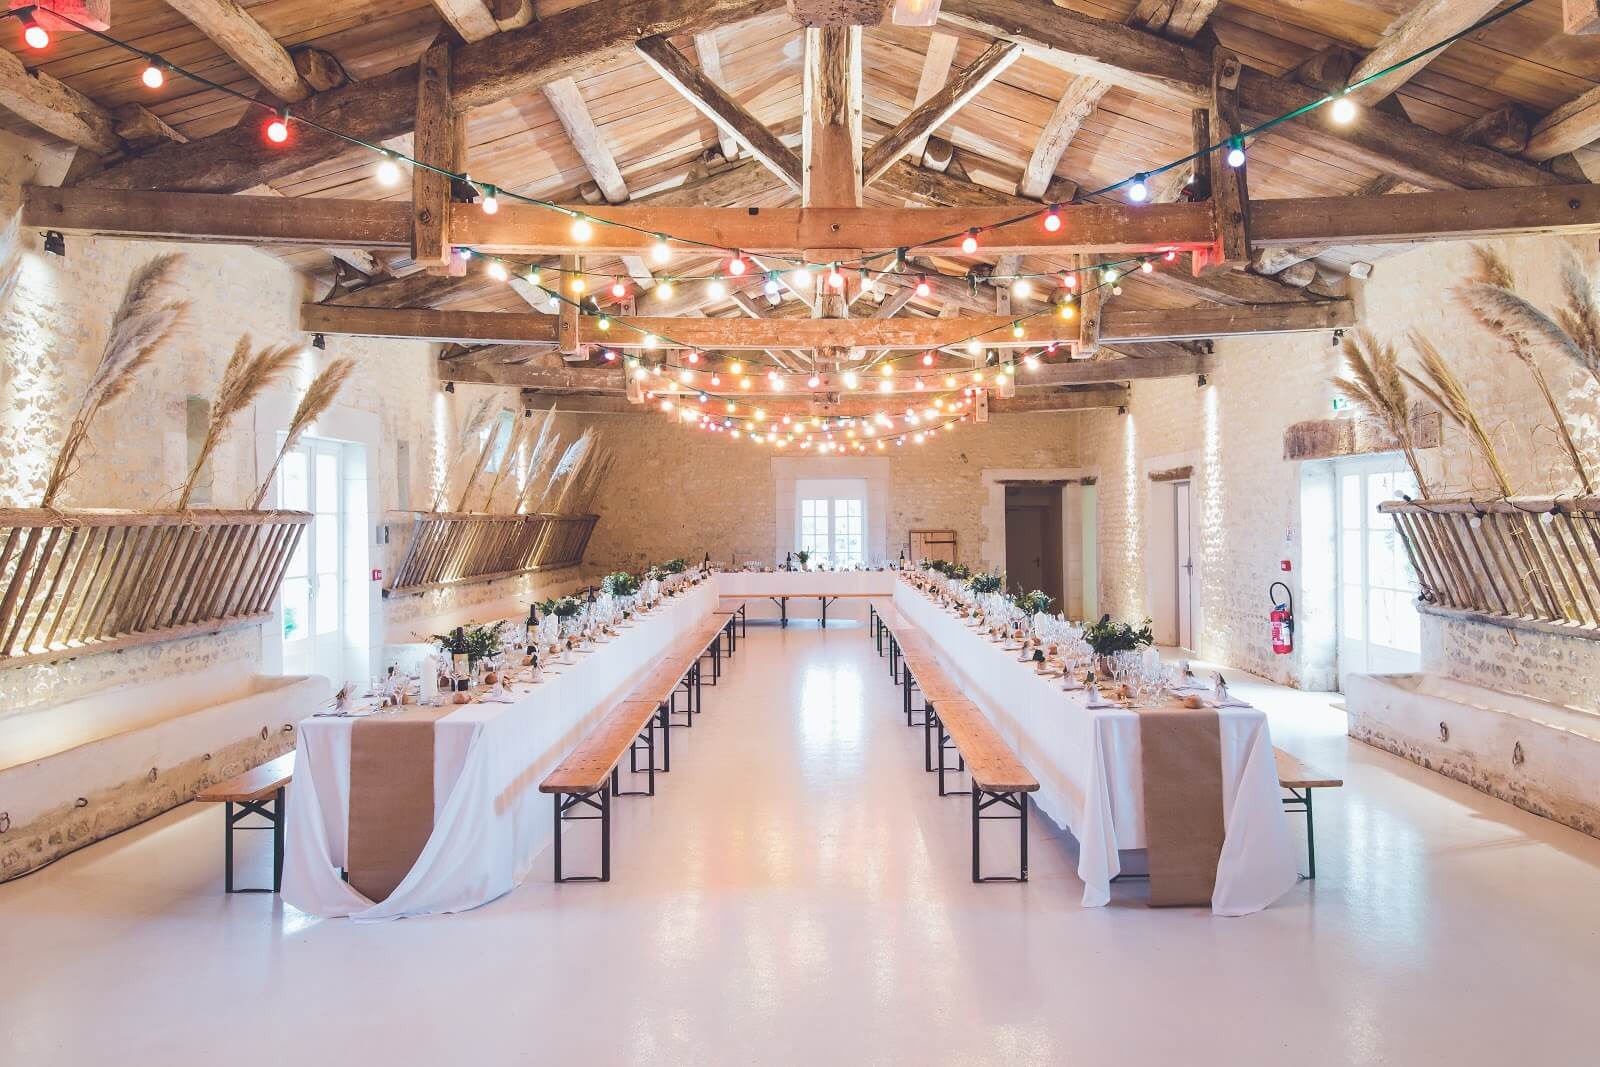 How to become a wedding planner: Two long banquet tables in event space